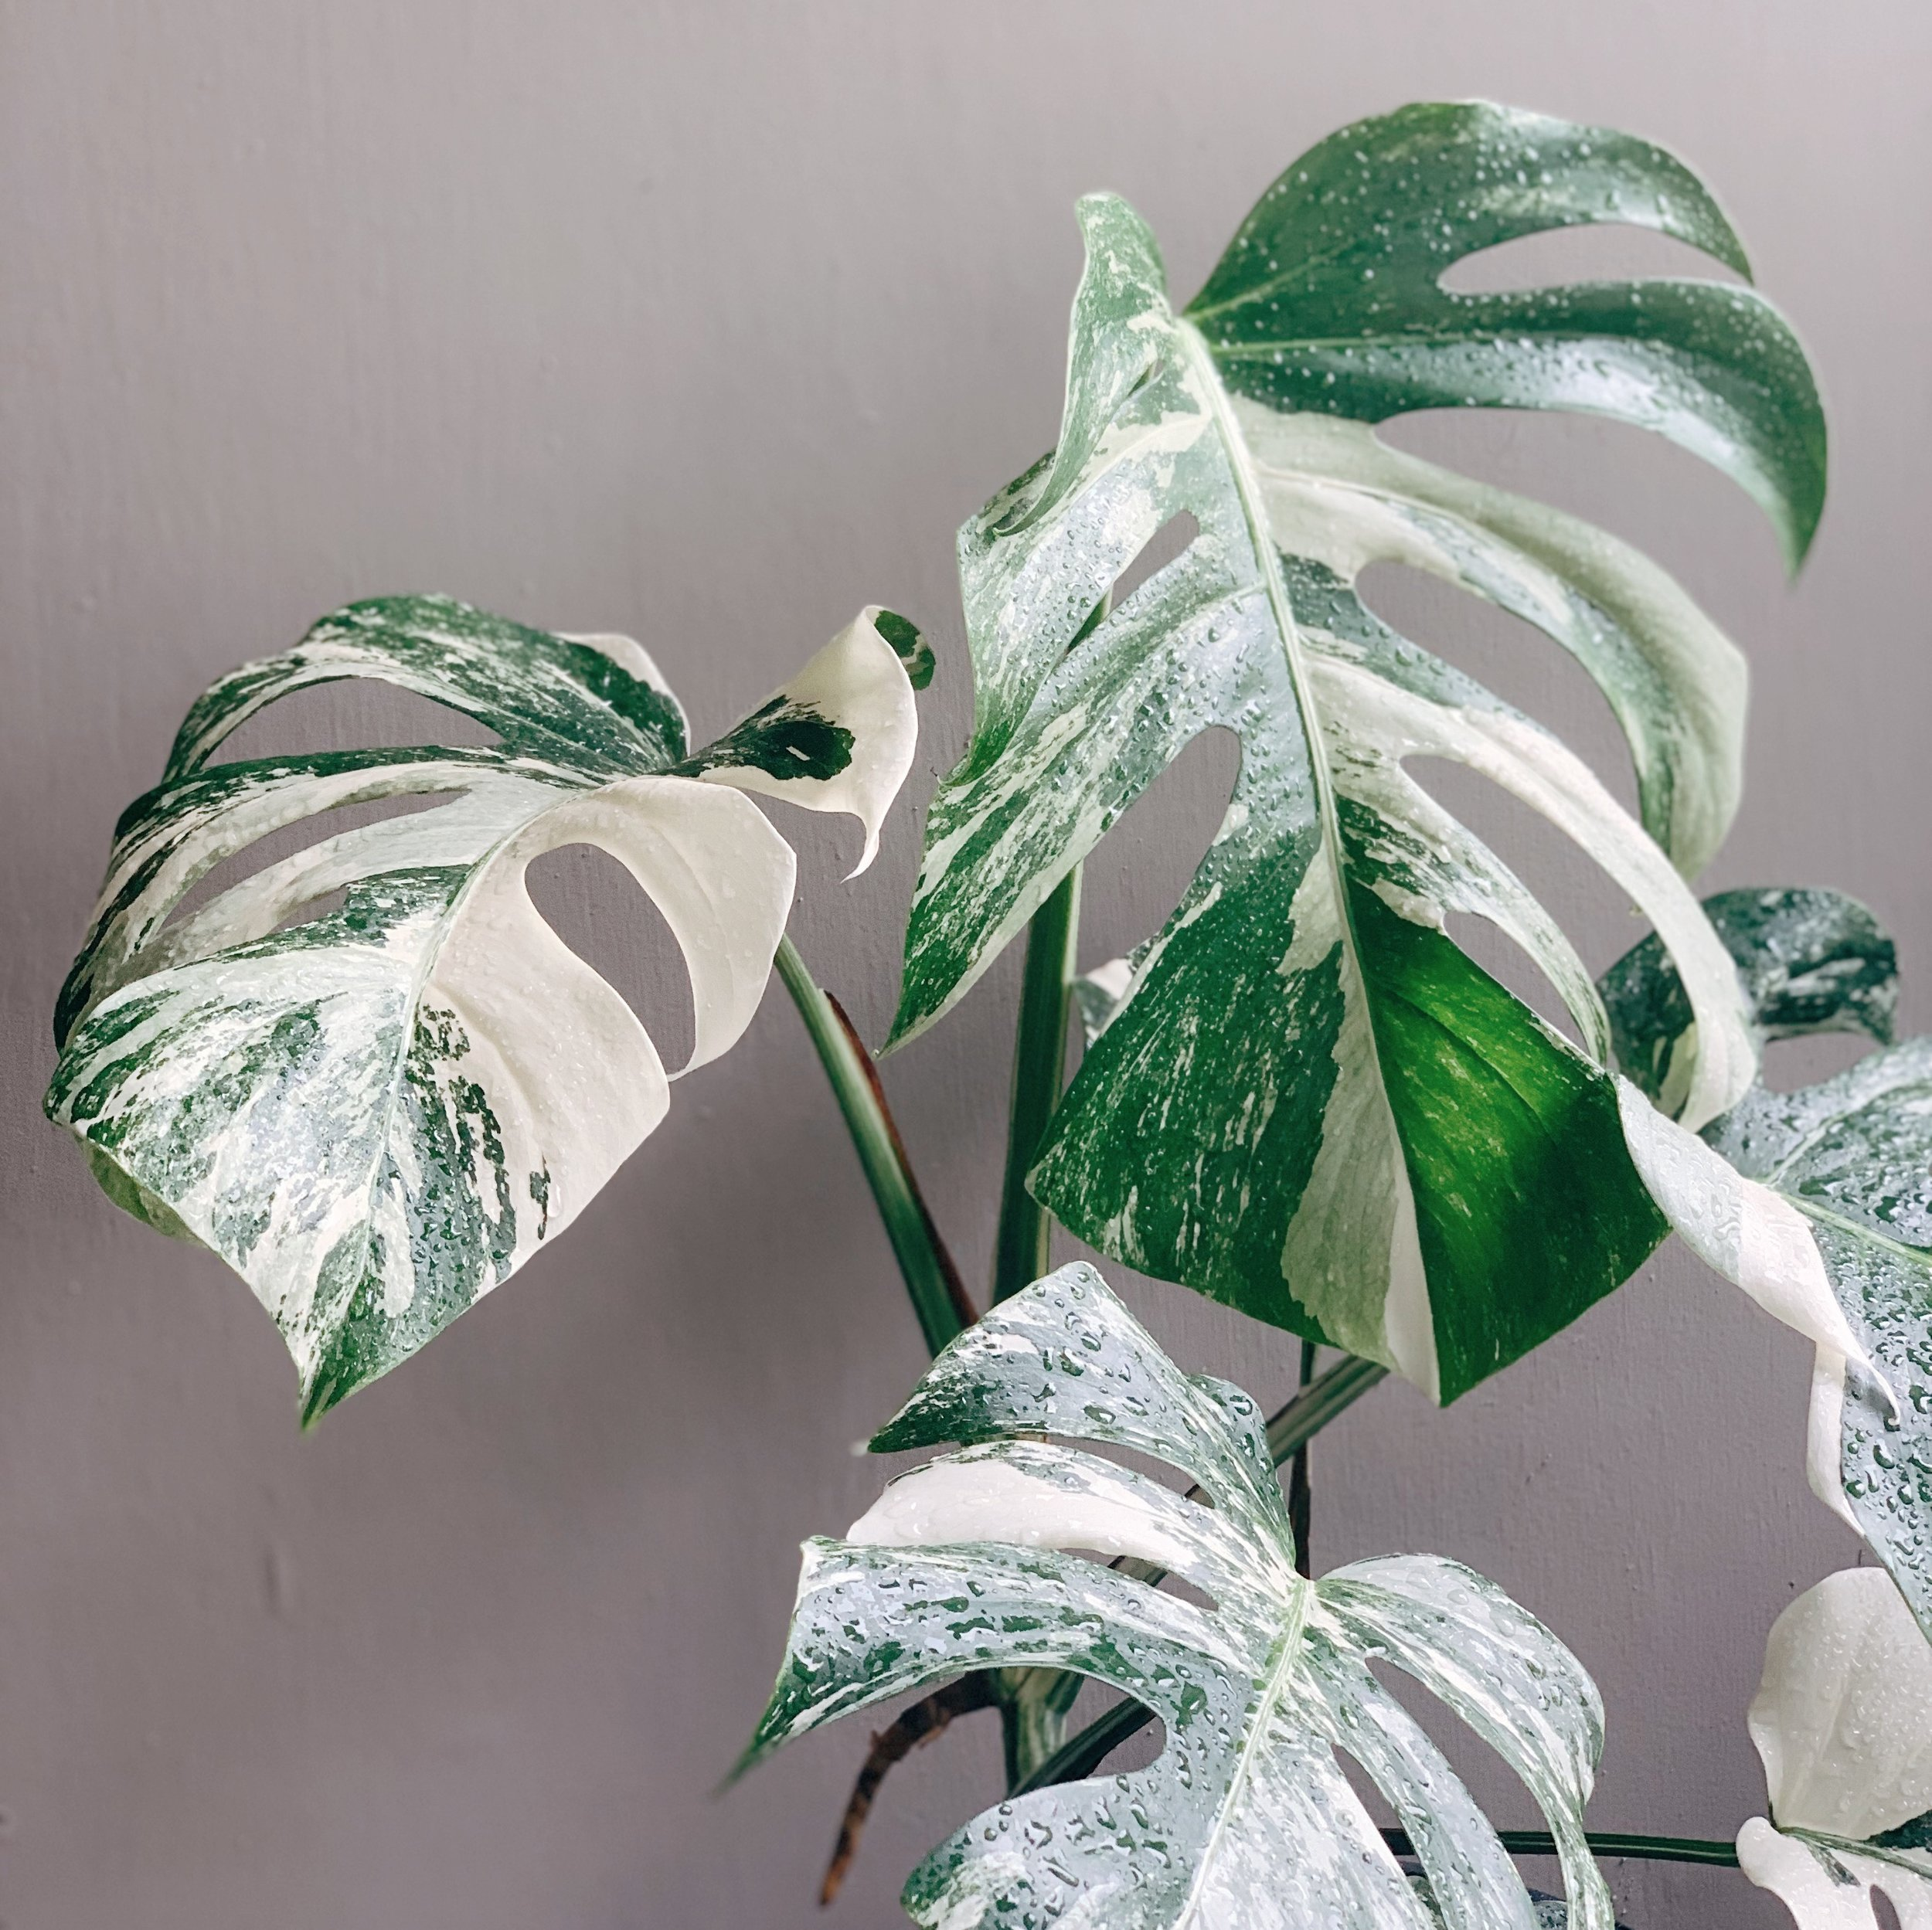 So you want to find a Variegated Monstera? Well you're in luck! This blog post is dedicated to scoring a beautiful Variegated Monster. Also, I regularly hold giveaways for cuttings of this plant, so make sure you watch out for those on @houseplantplantclub (instagram).